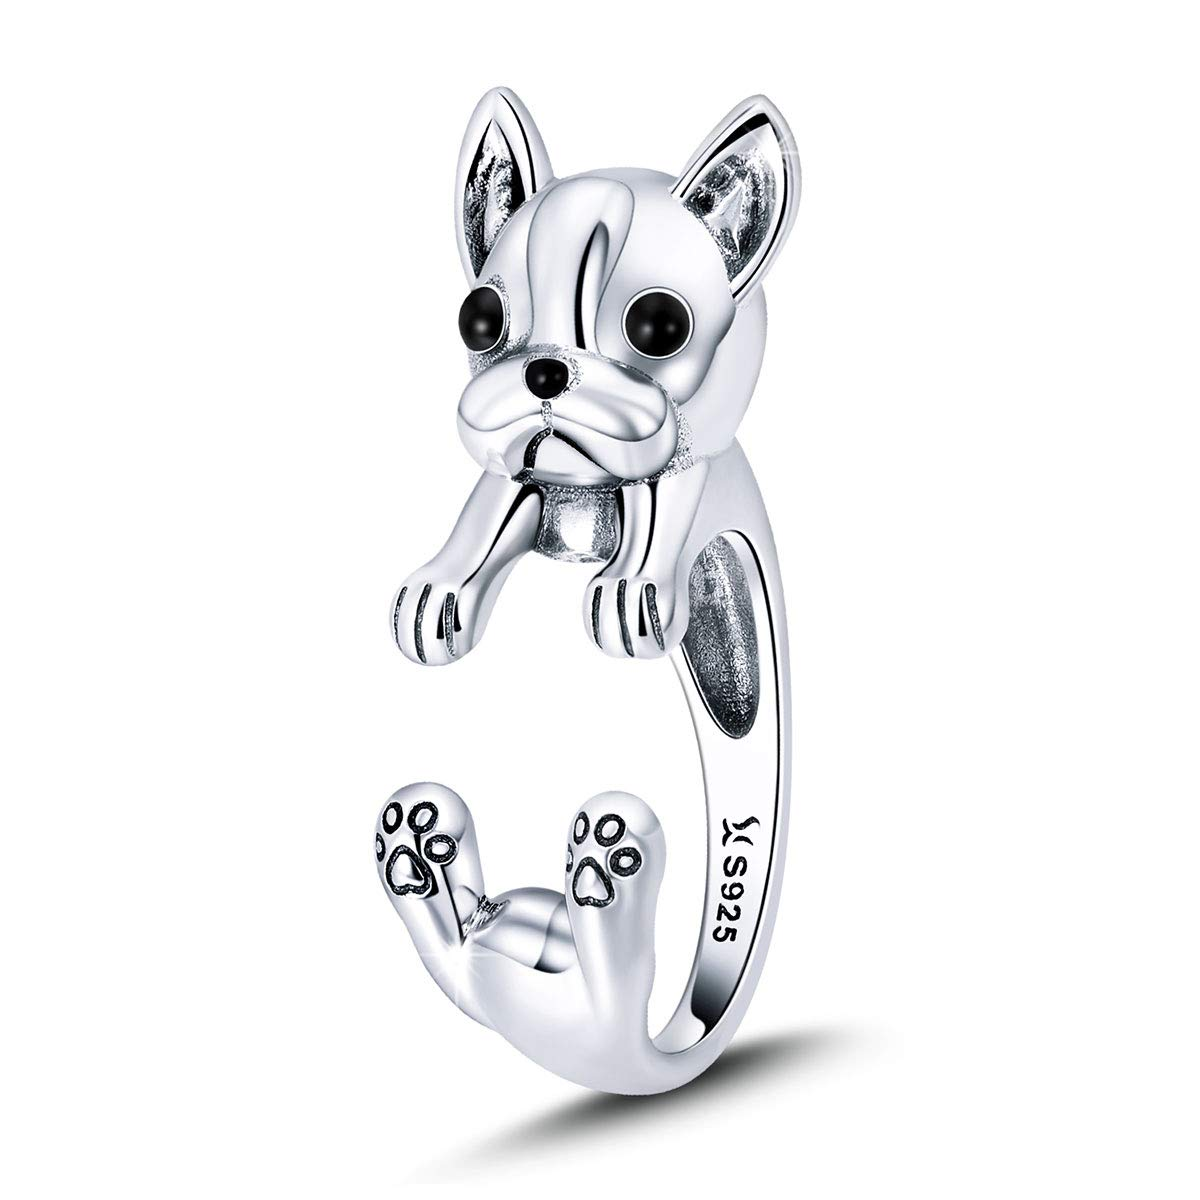 FOREVER QUEEN 925 Sterling Silver French Bulldog Open Ring, Adjustable Finger Rings Animal Jewelry Dog Lover Gifts